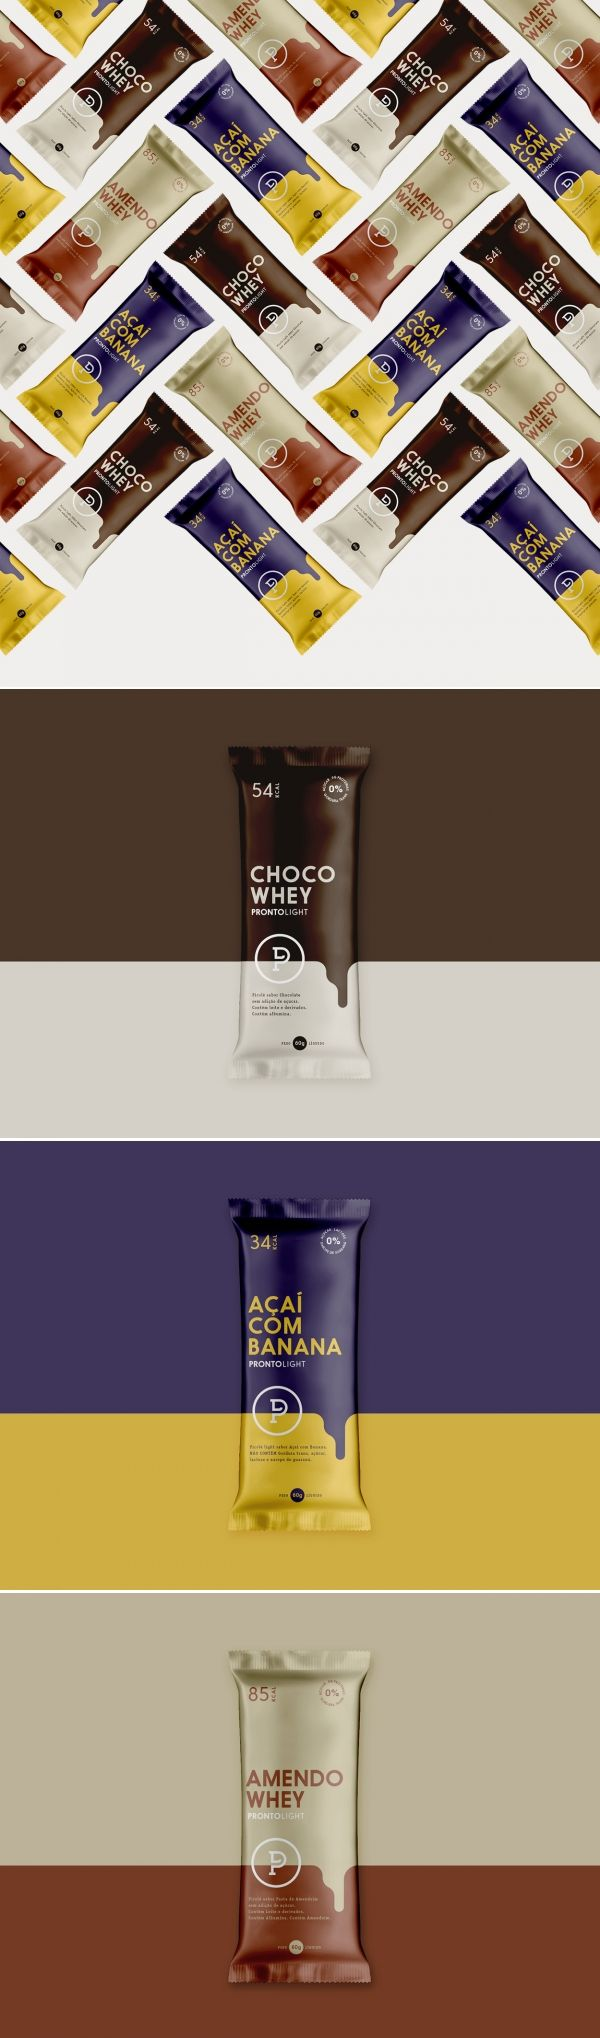 Packaging design to new line of Pronto Light Ice Cream